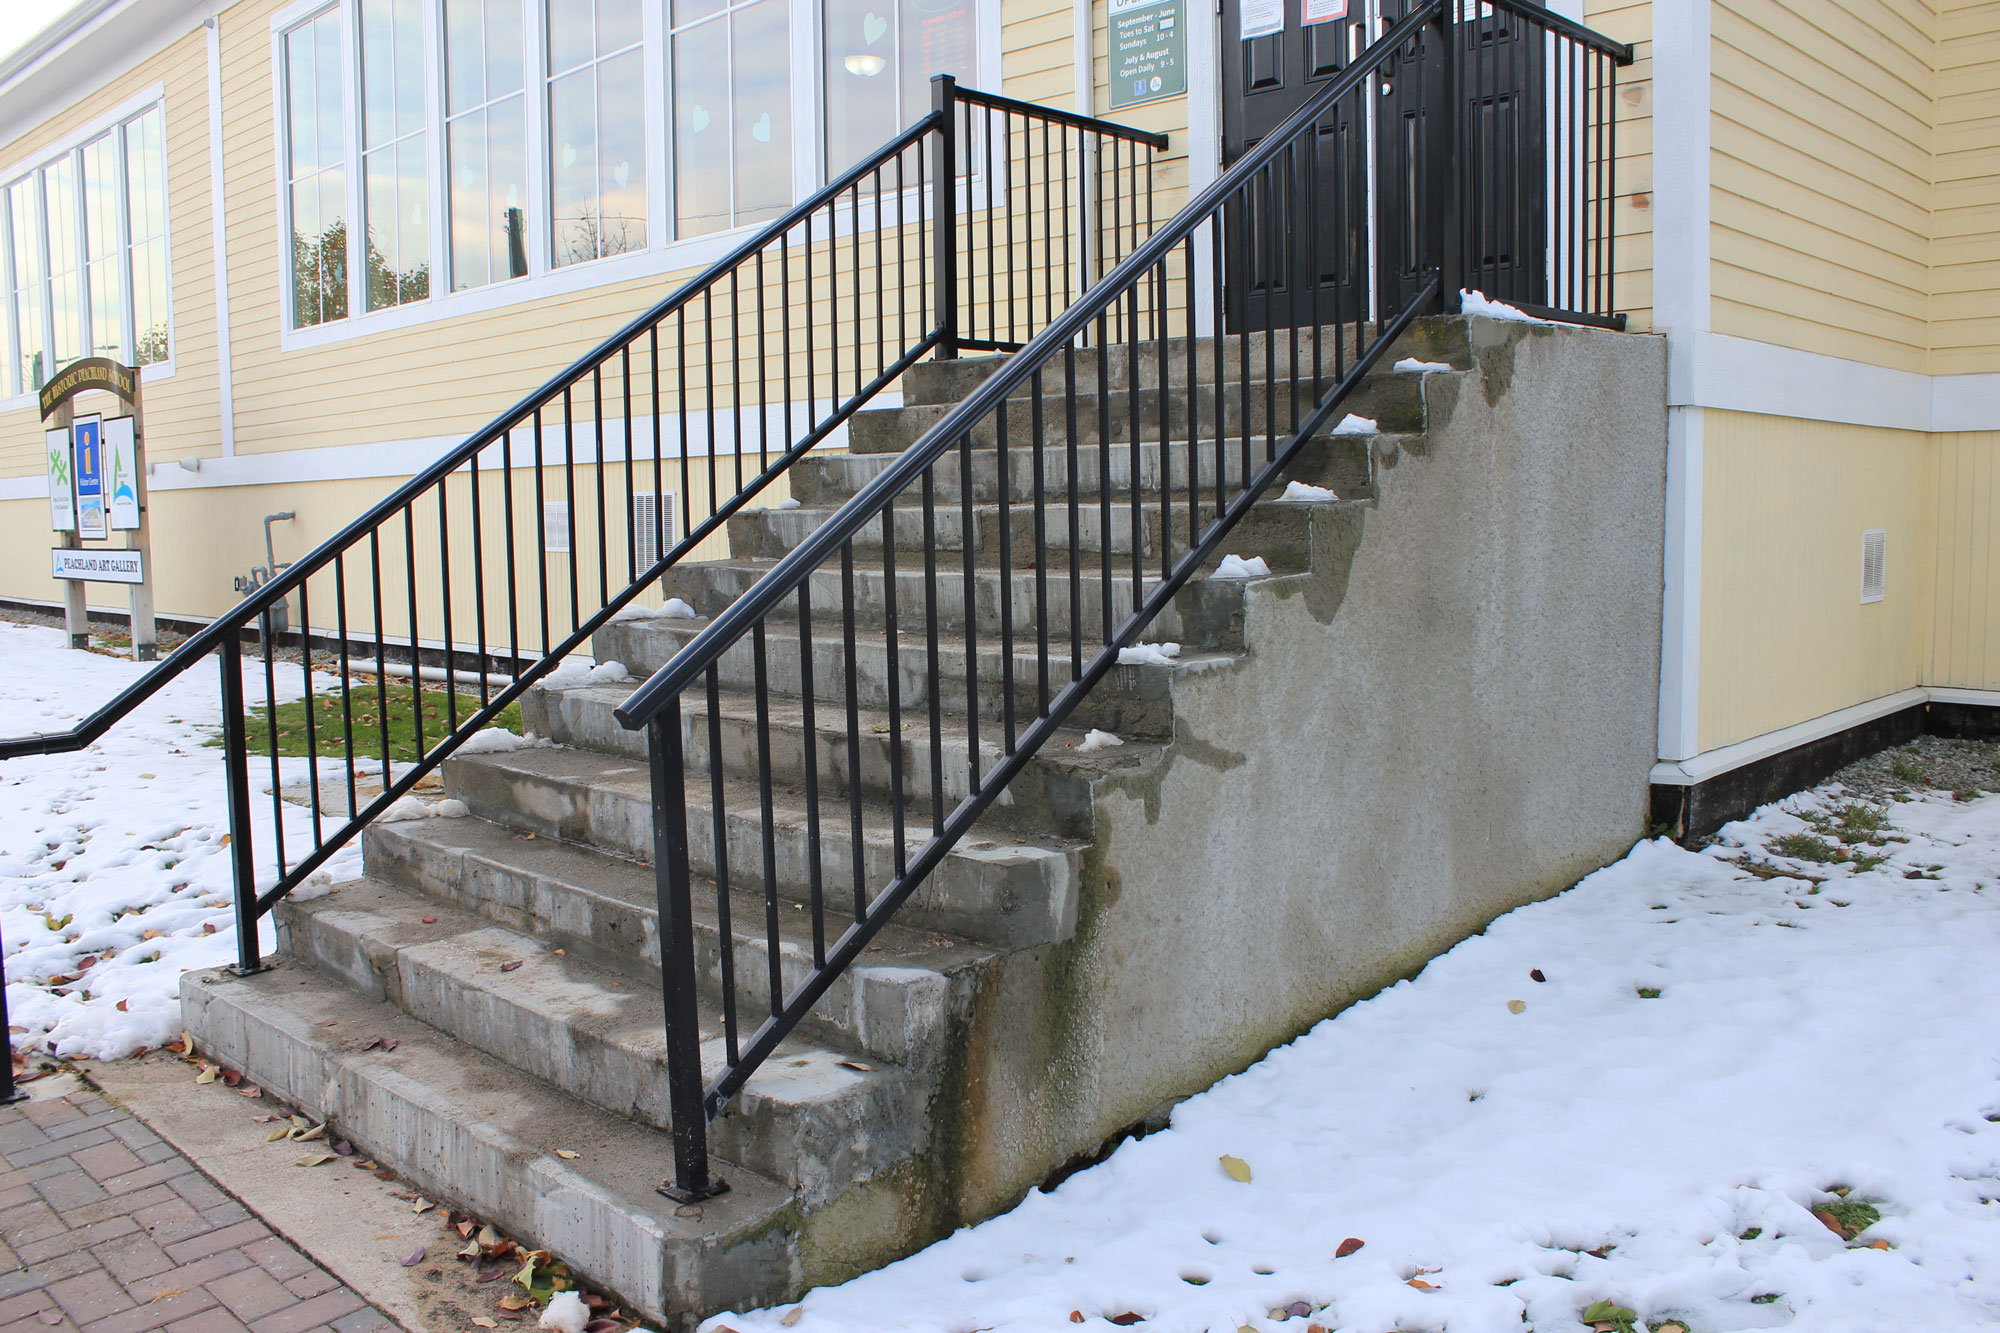 Inaccessible Stairs